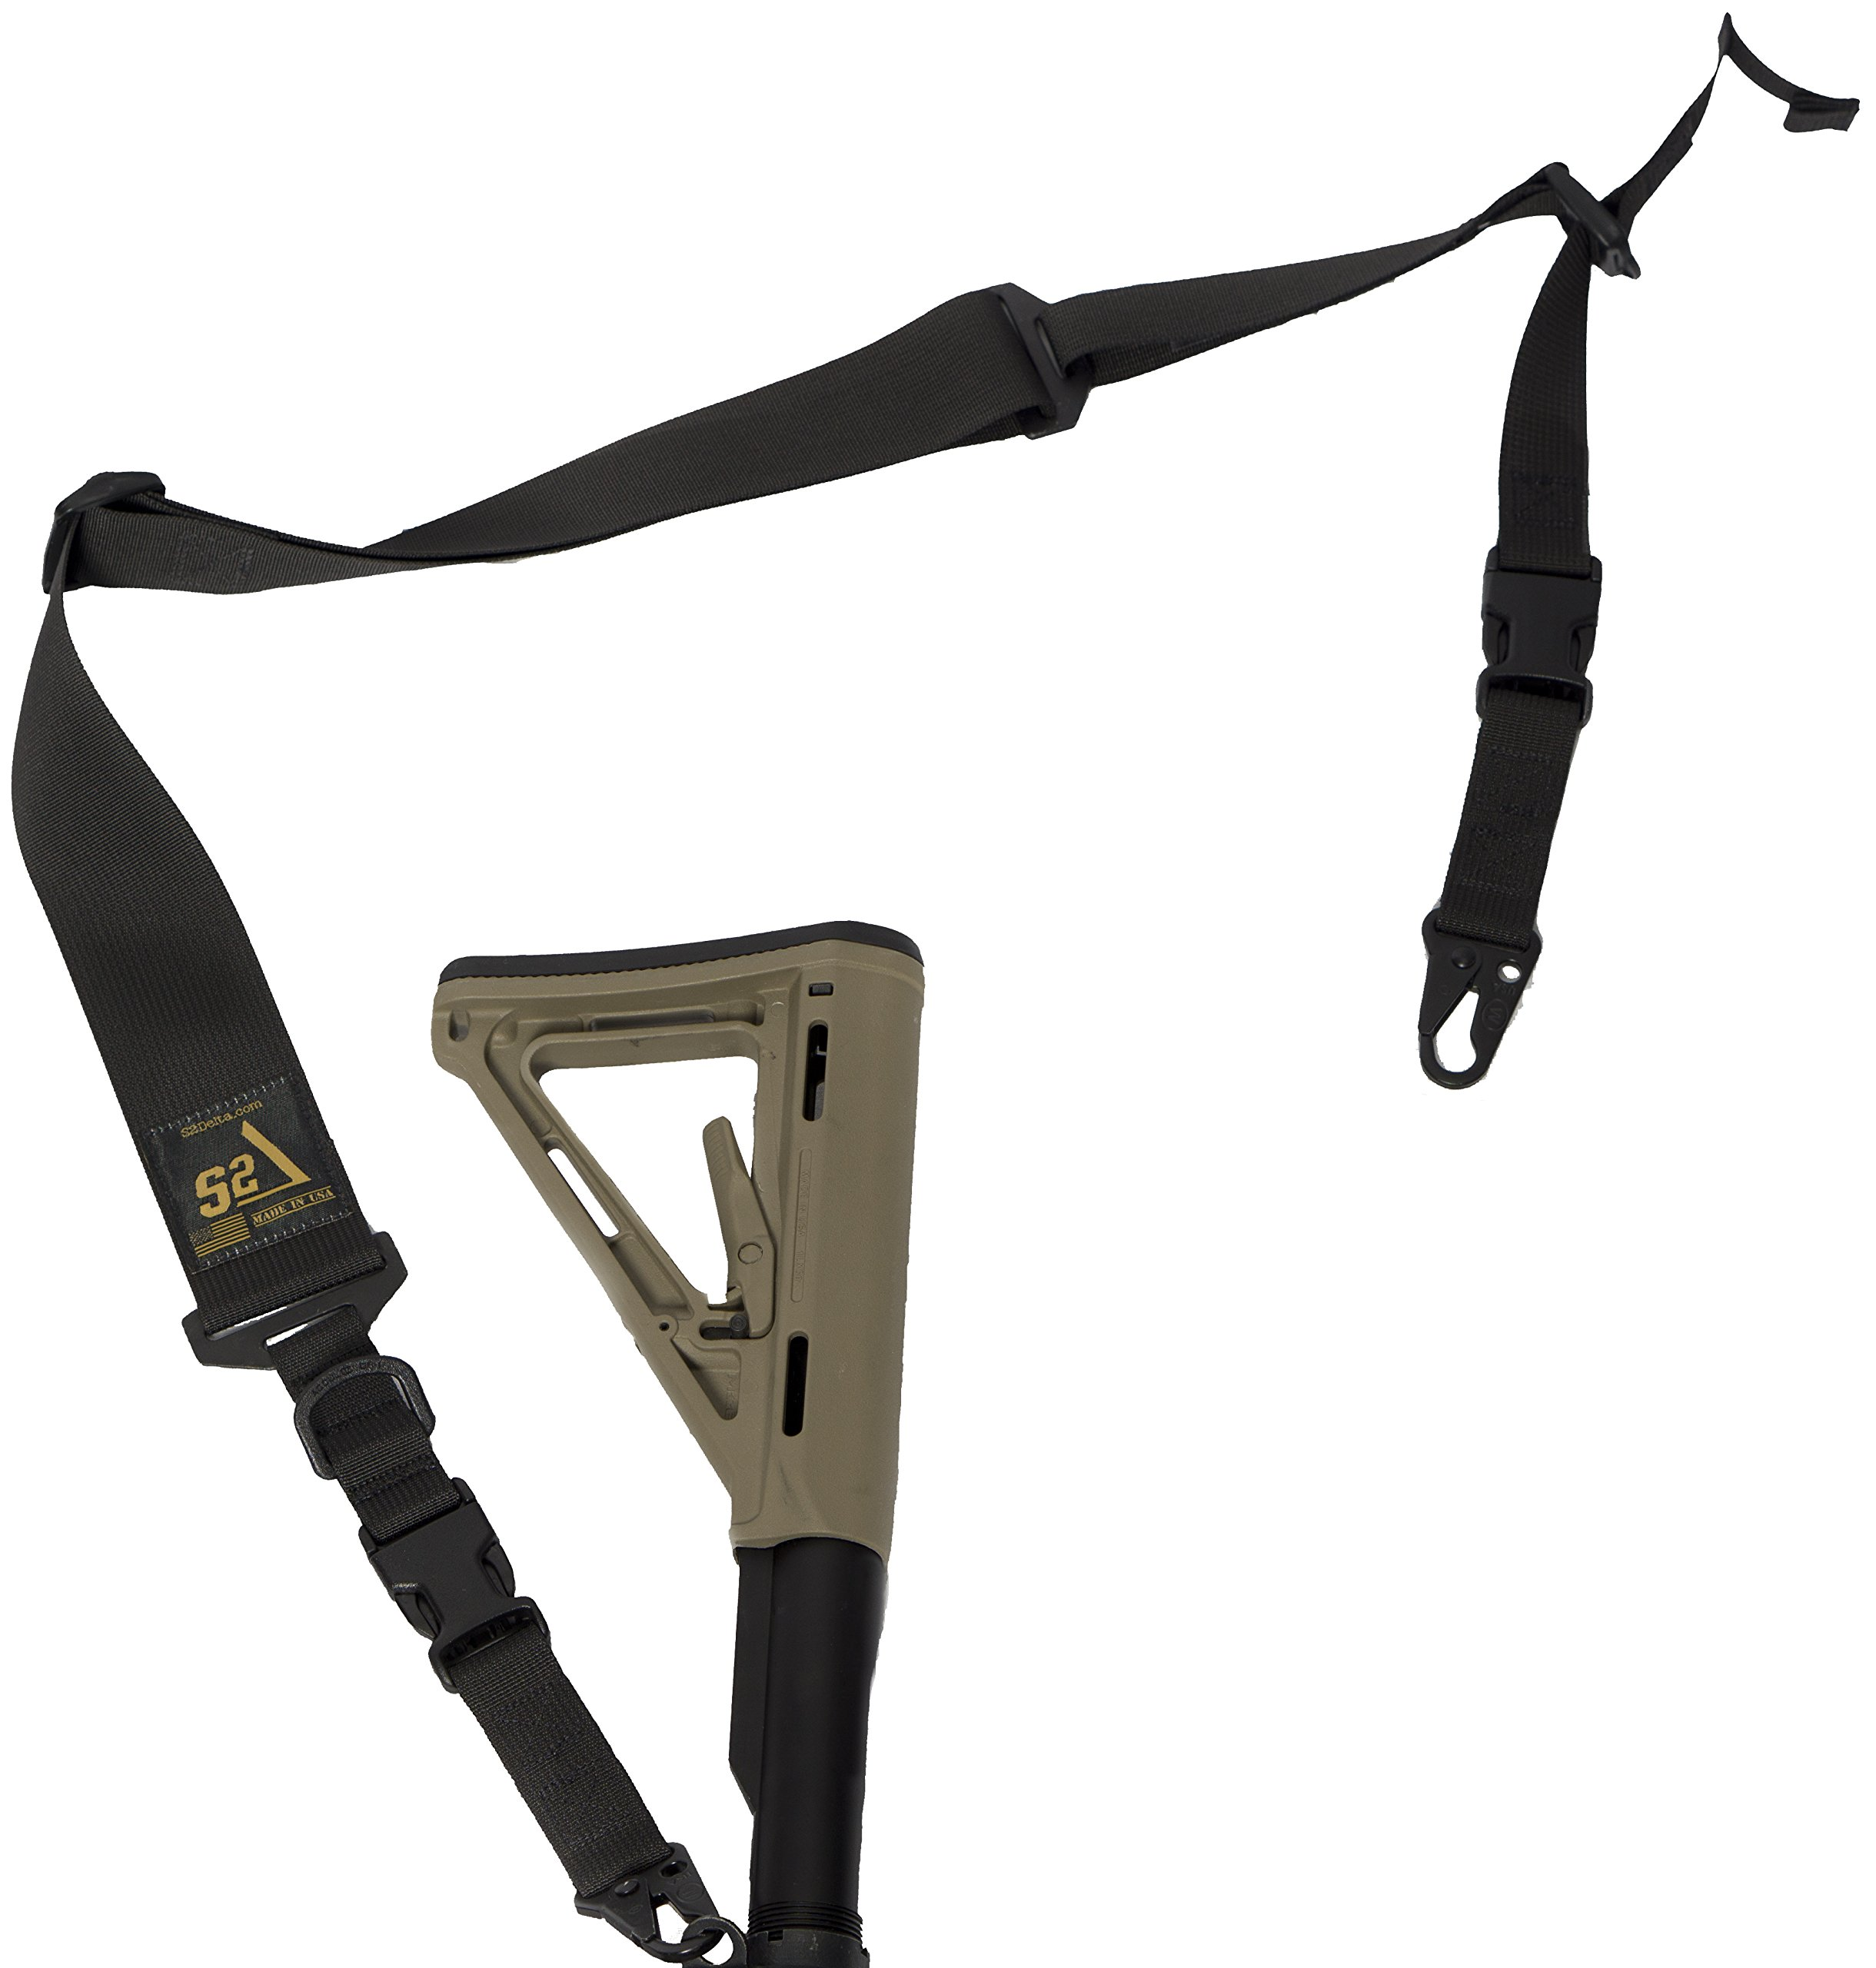 S2Delta - USA Made 2 Point Rifle Sling, Quick Adjustment, Modular Attachment Connections, Comfortable 2'' Wide Shoulder Strap to 1'' Attachment Ends (Black with C.L.A.S.H. Hooks) (MRS2P-USA-BCH) by S2Delta